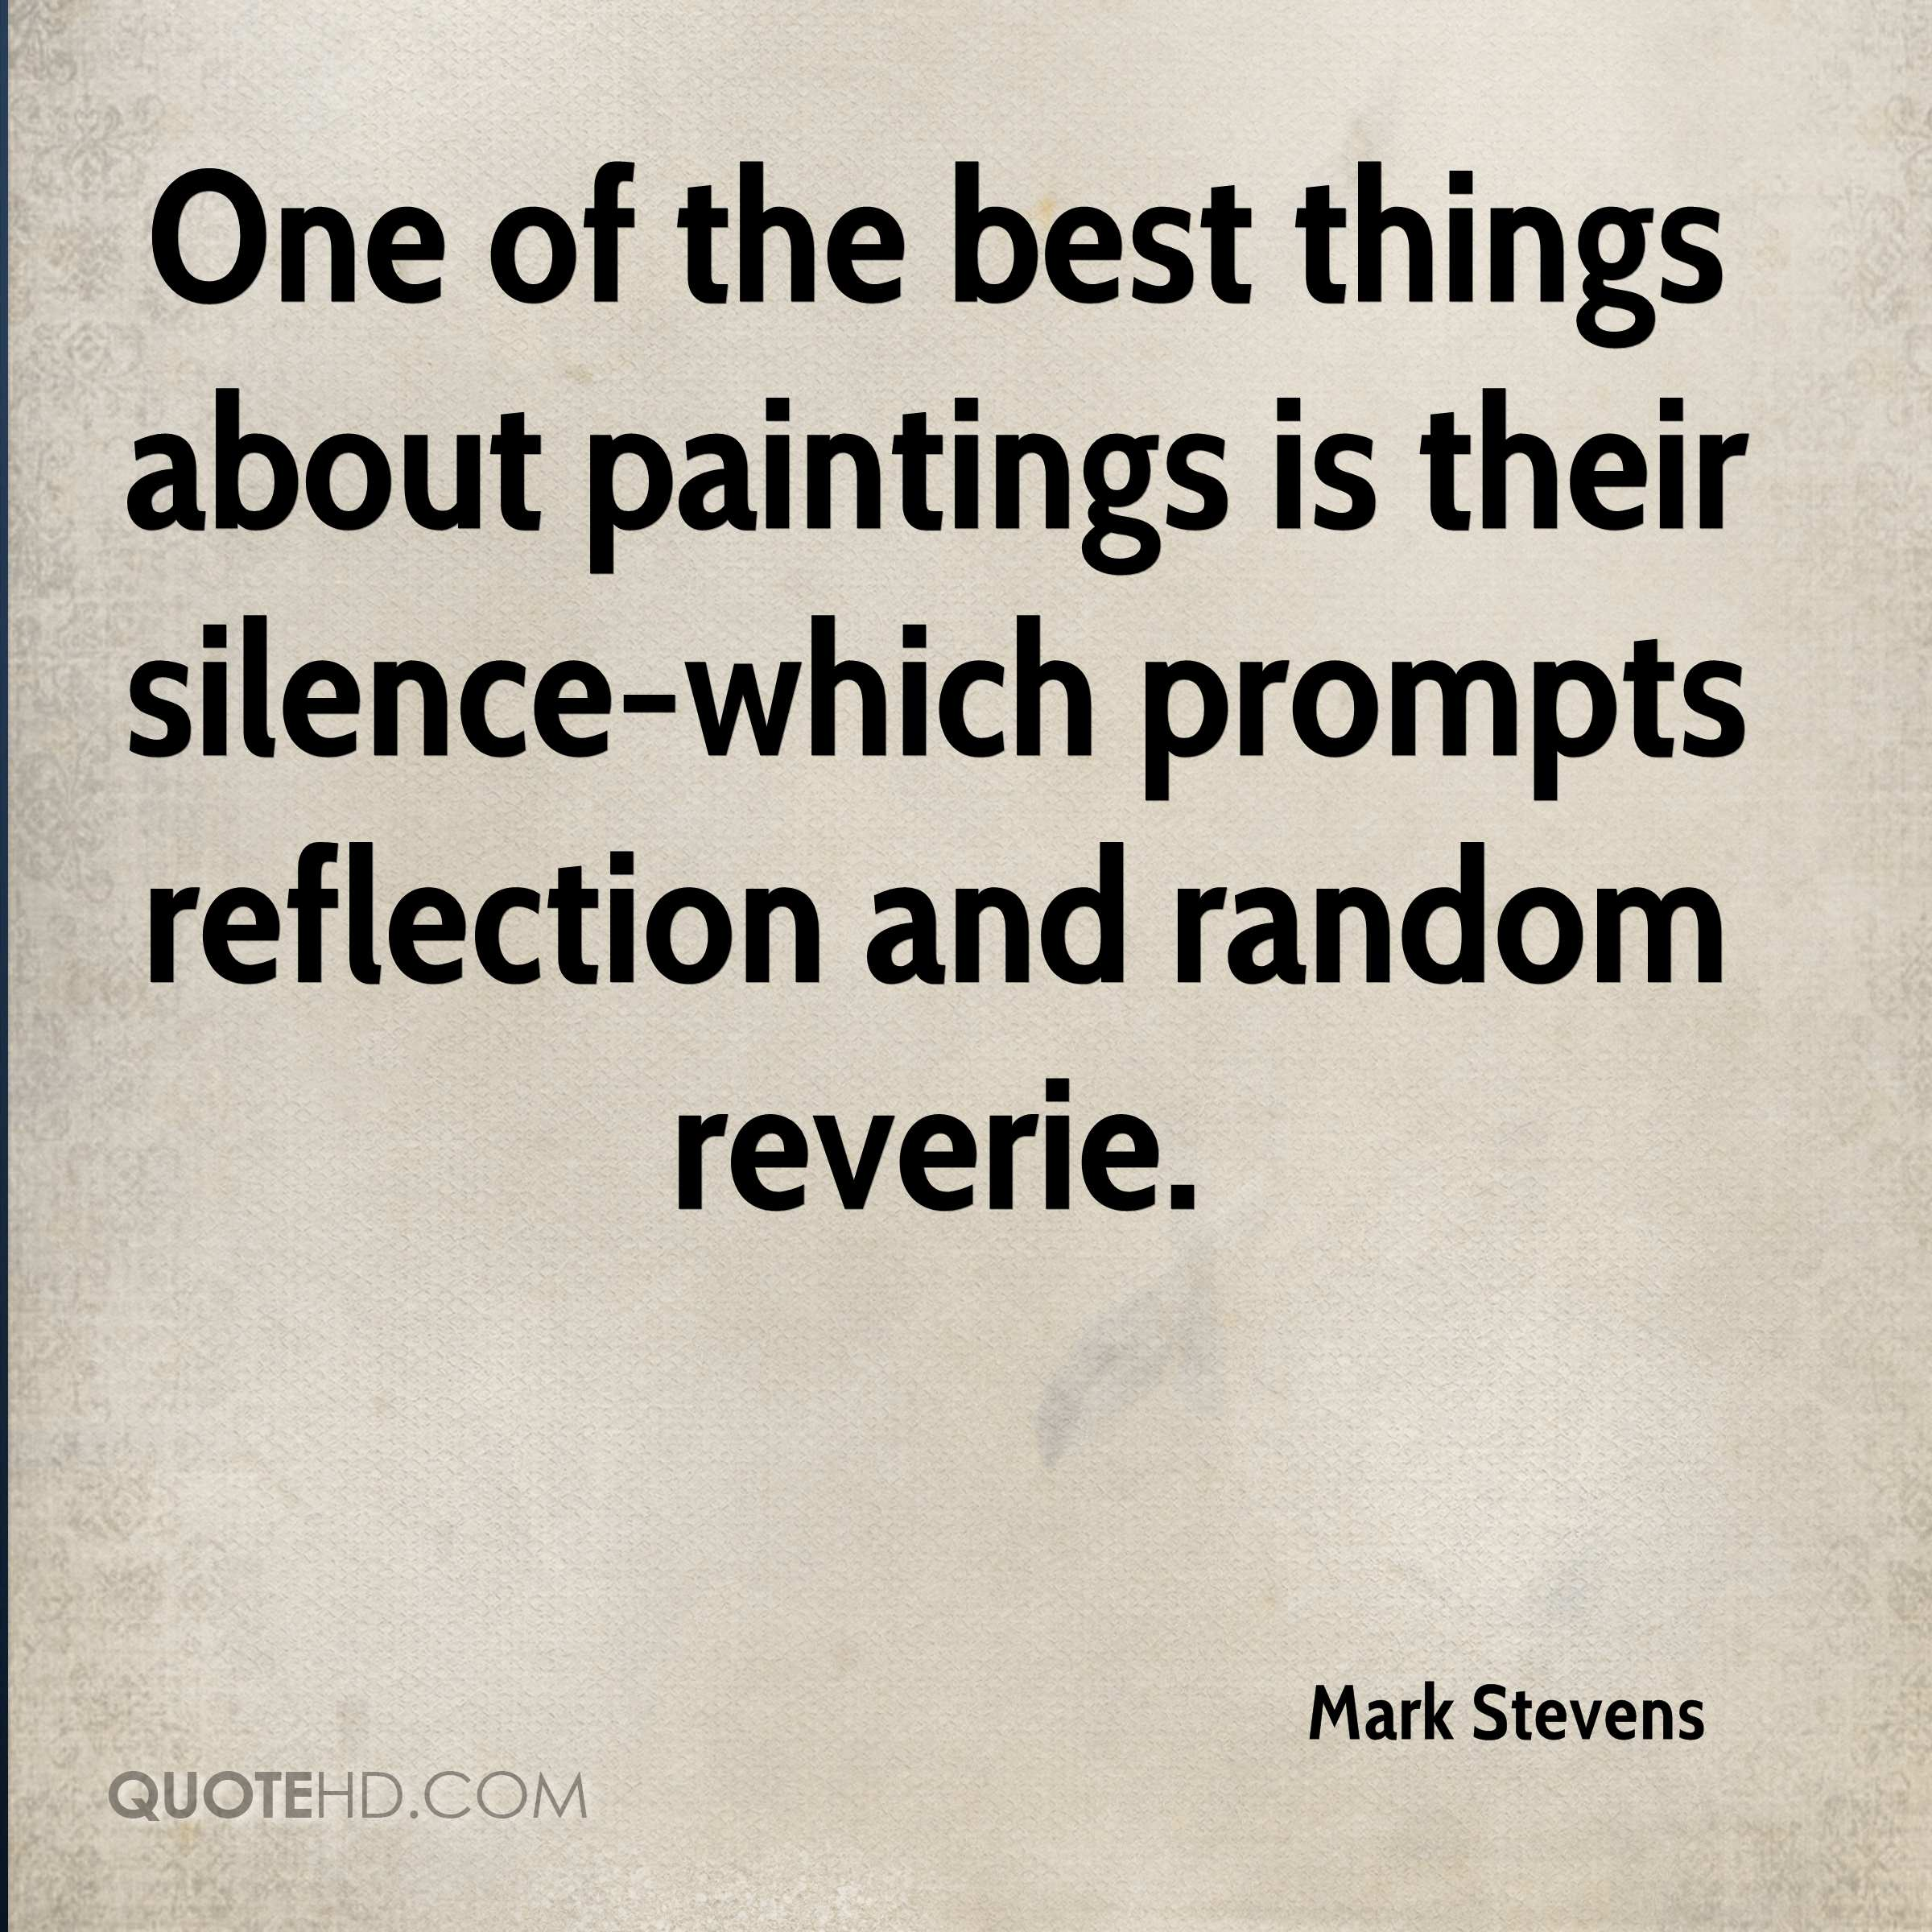 One of the best things about paintings is their silence-which prompts reflection and random reverie.